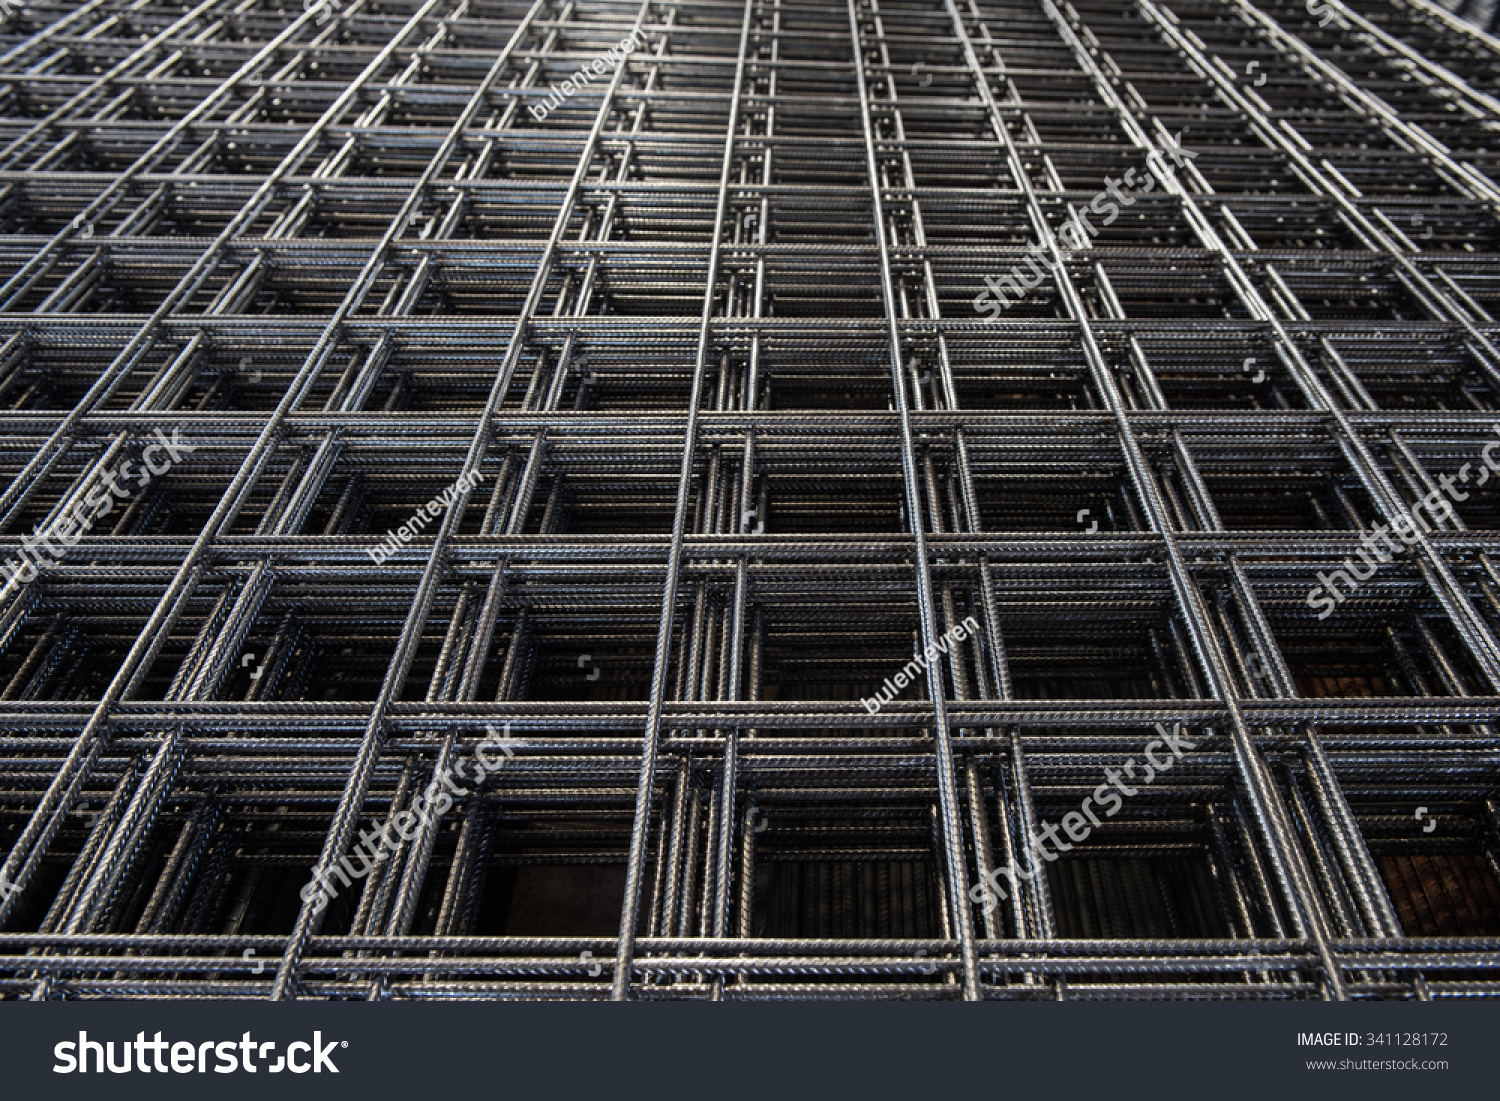 Stainless Steel Wire Fences Lying On Stock Photo (Royalty Free ...